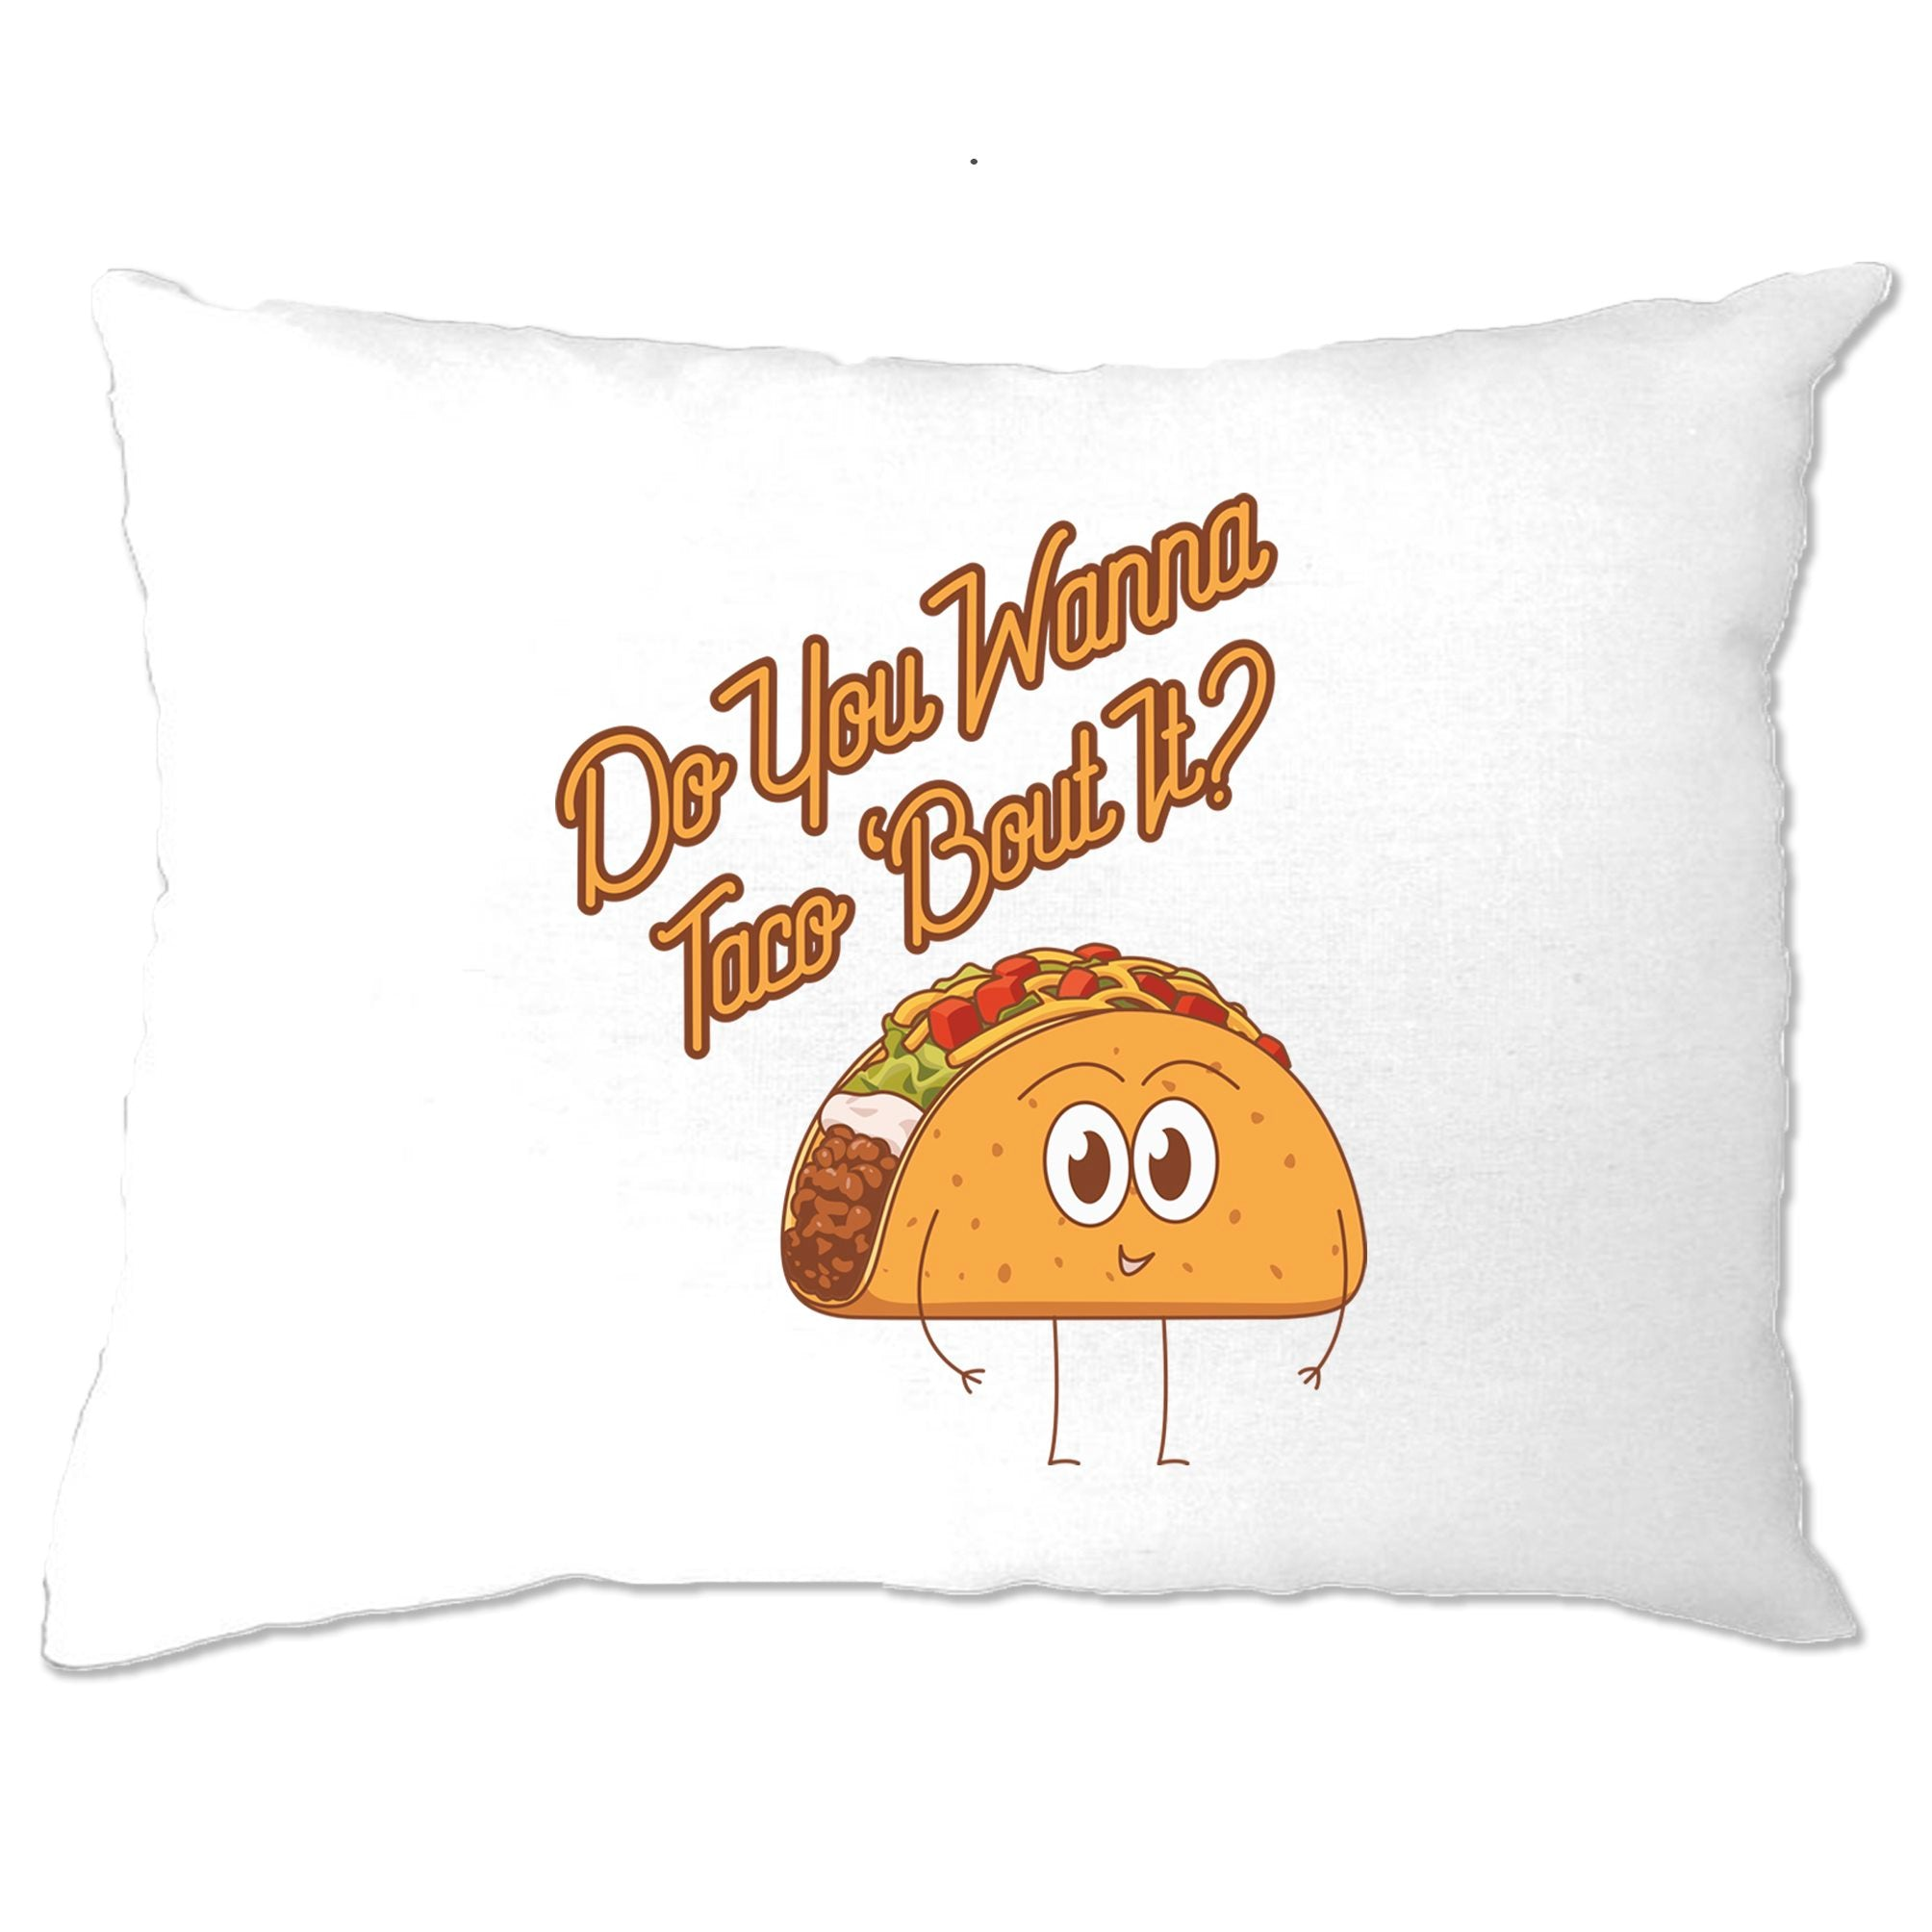 Novelty Food Pillow Case Do You Wanna Taco 'Bout It Pun